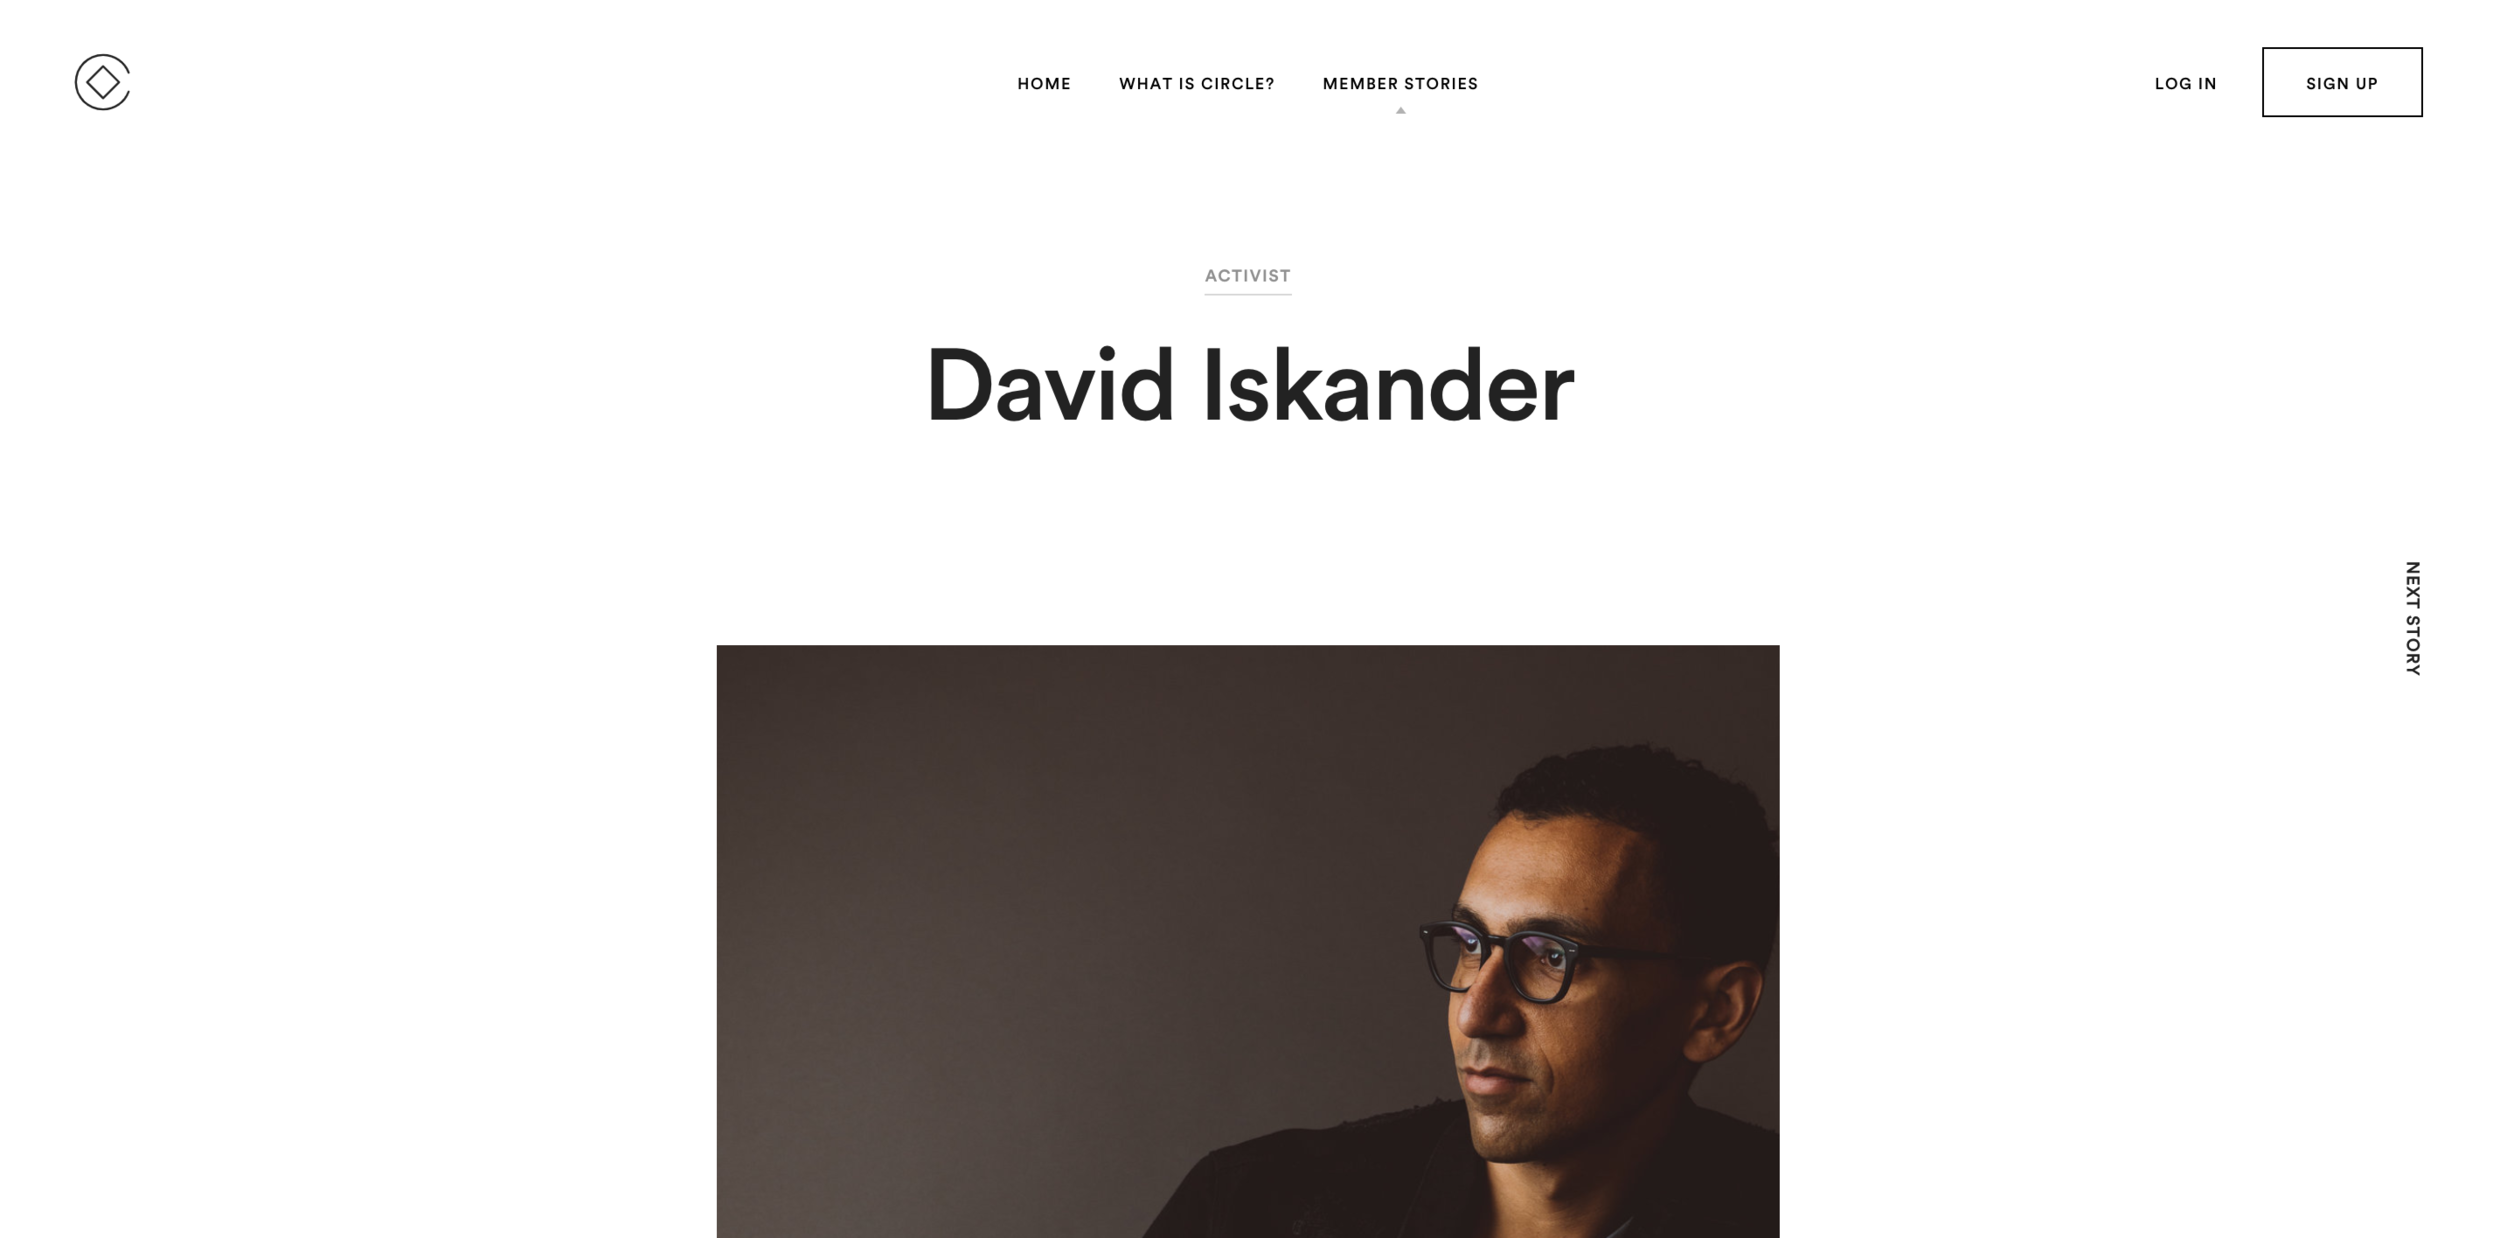 Squarespace Website Designer & Services